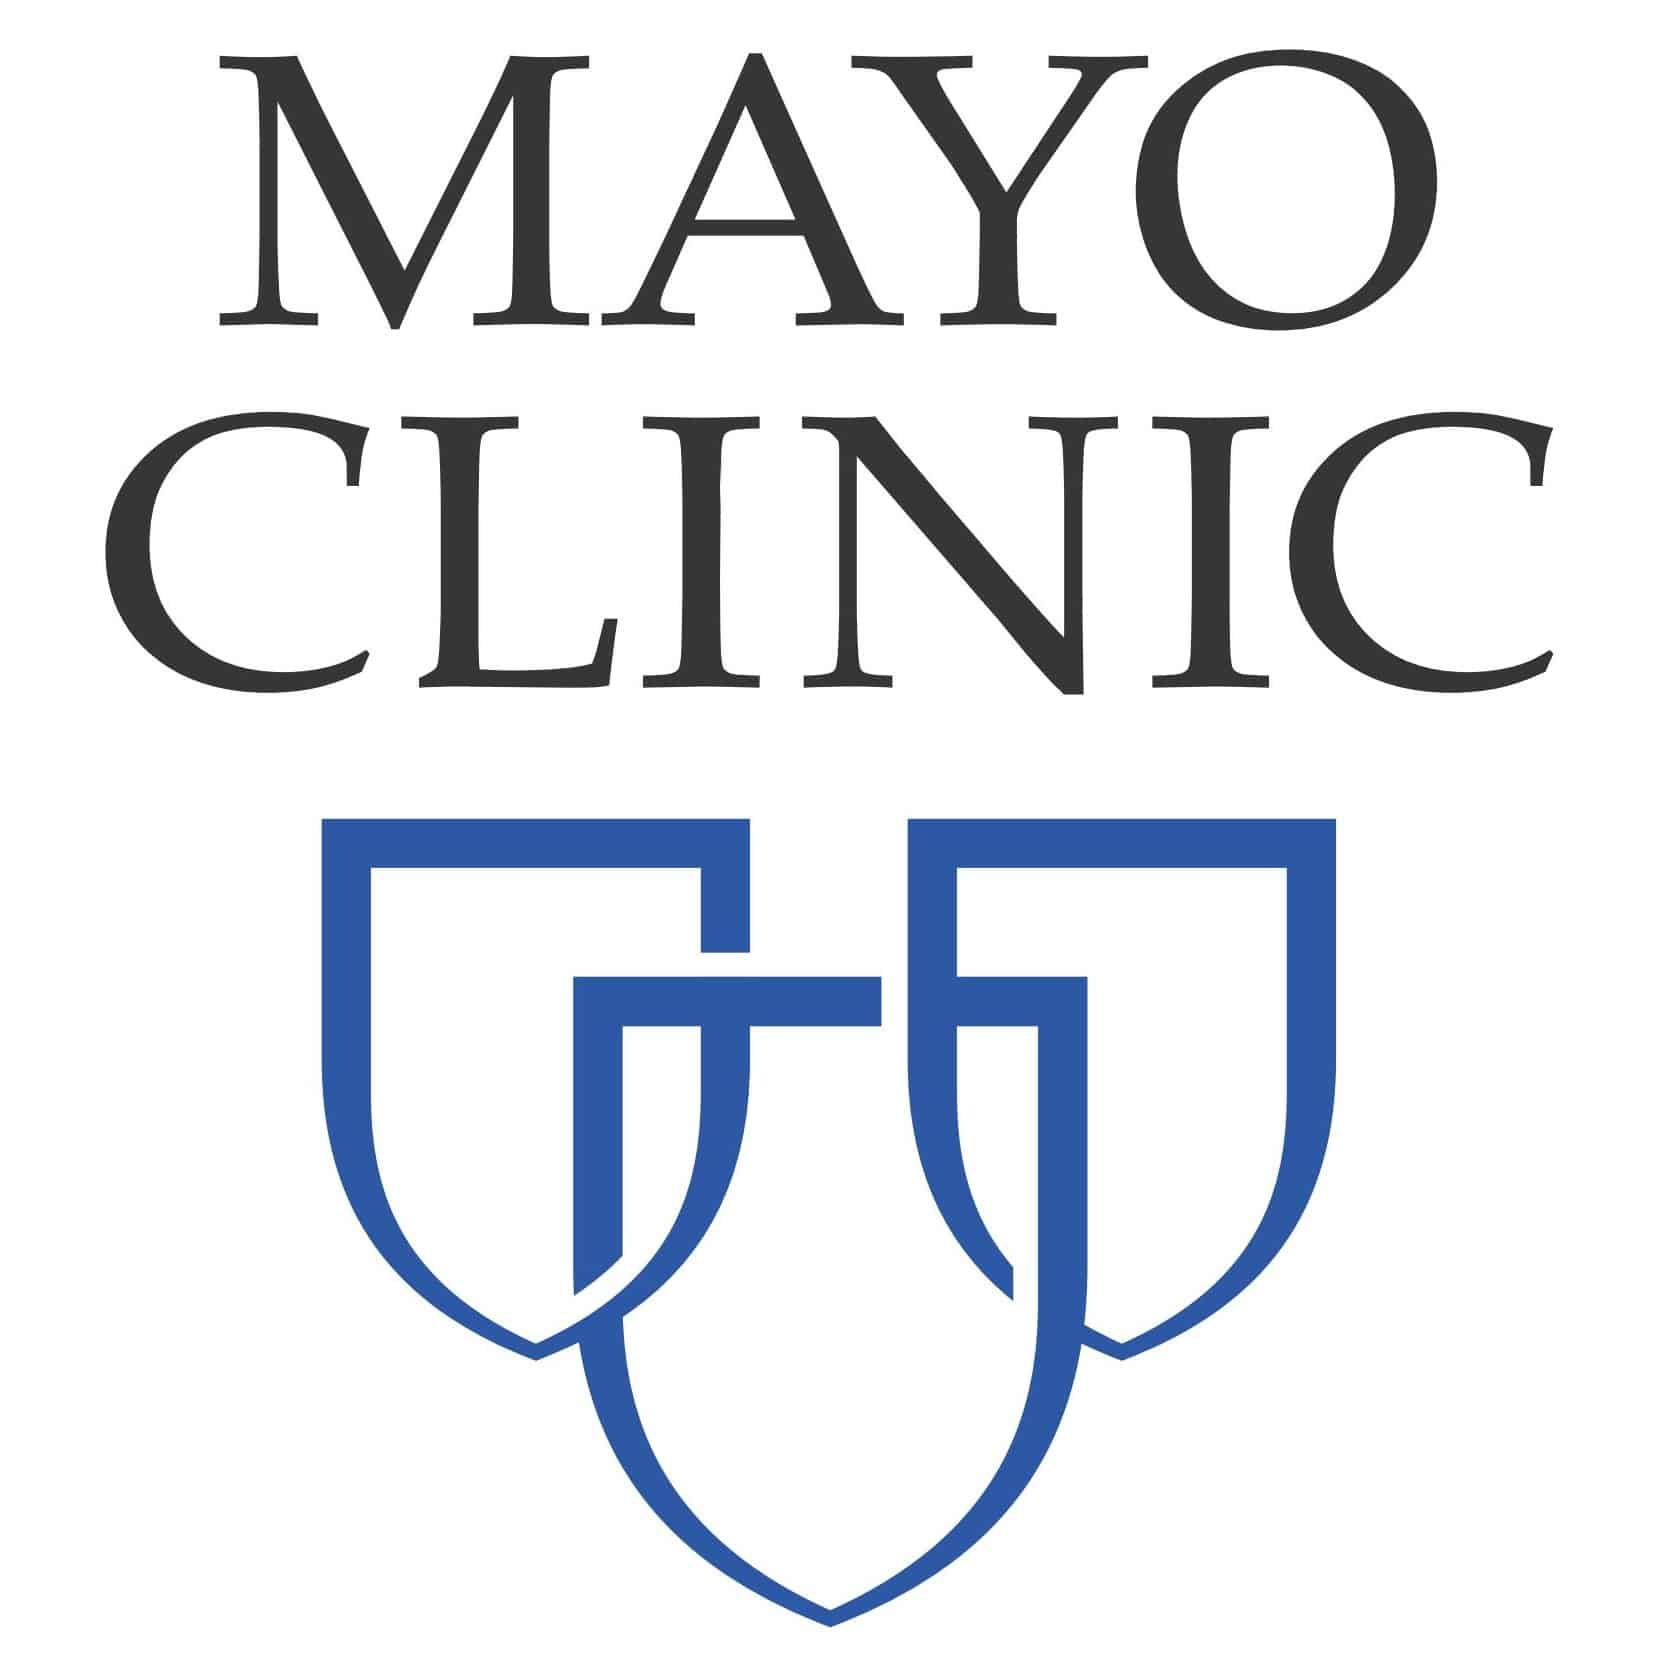 mayoclinic logo